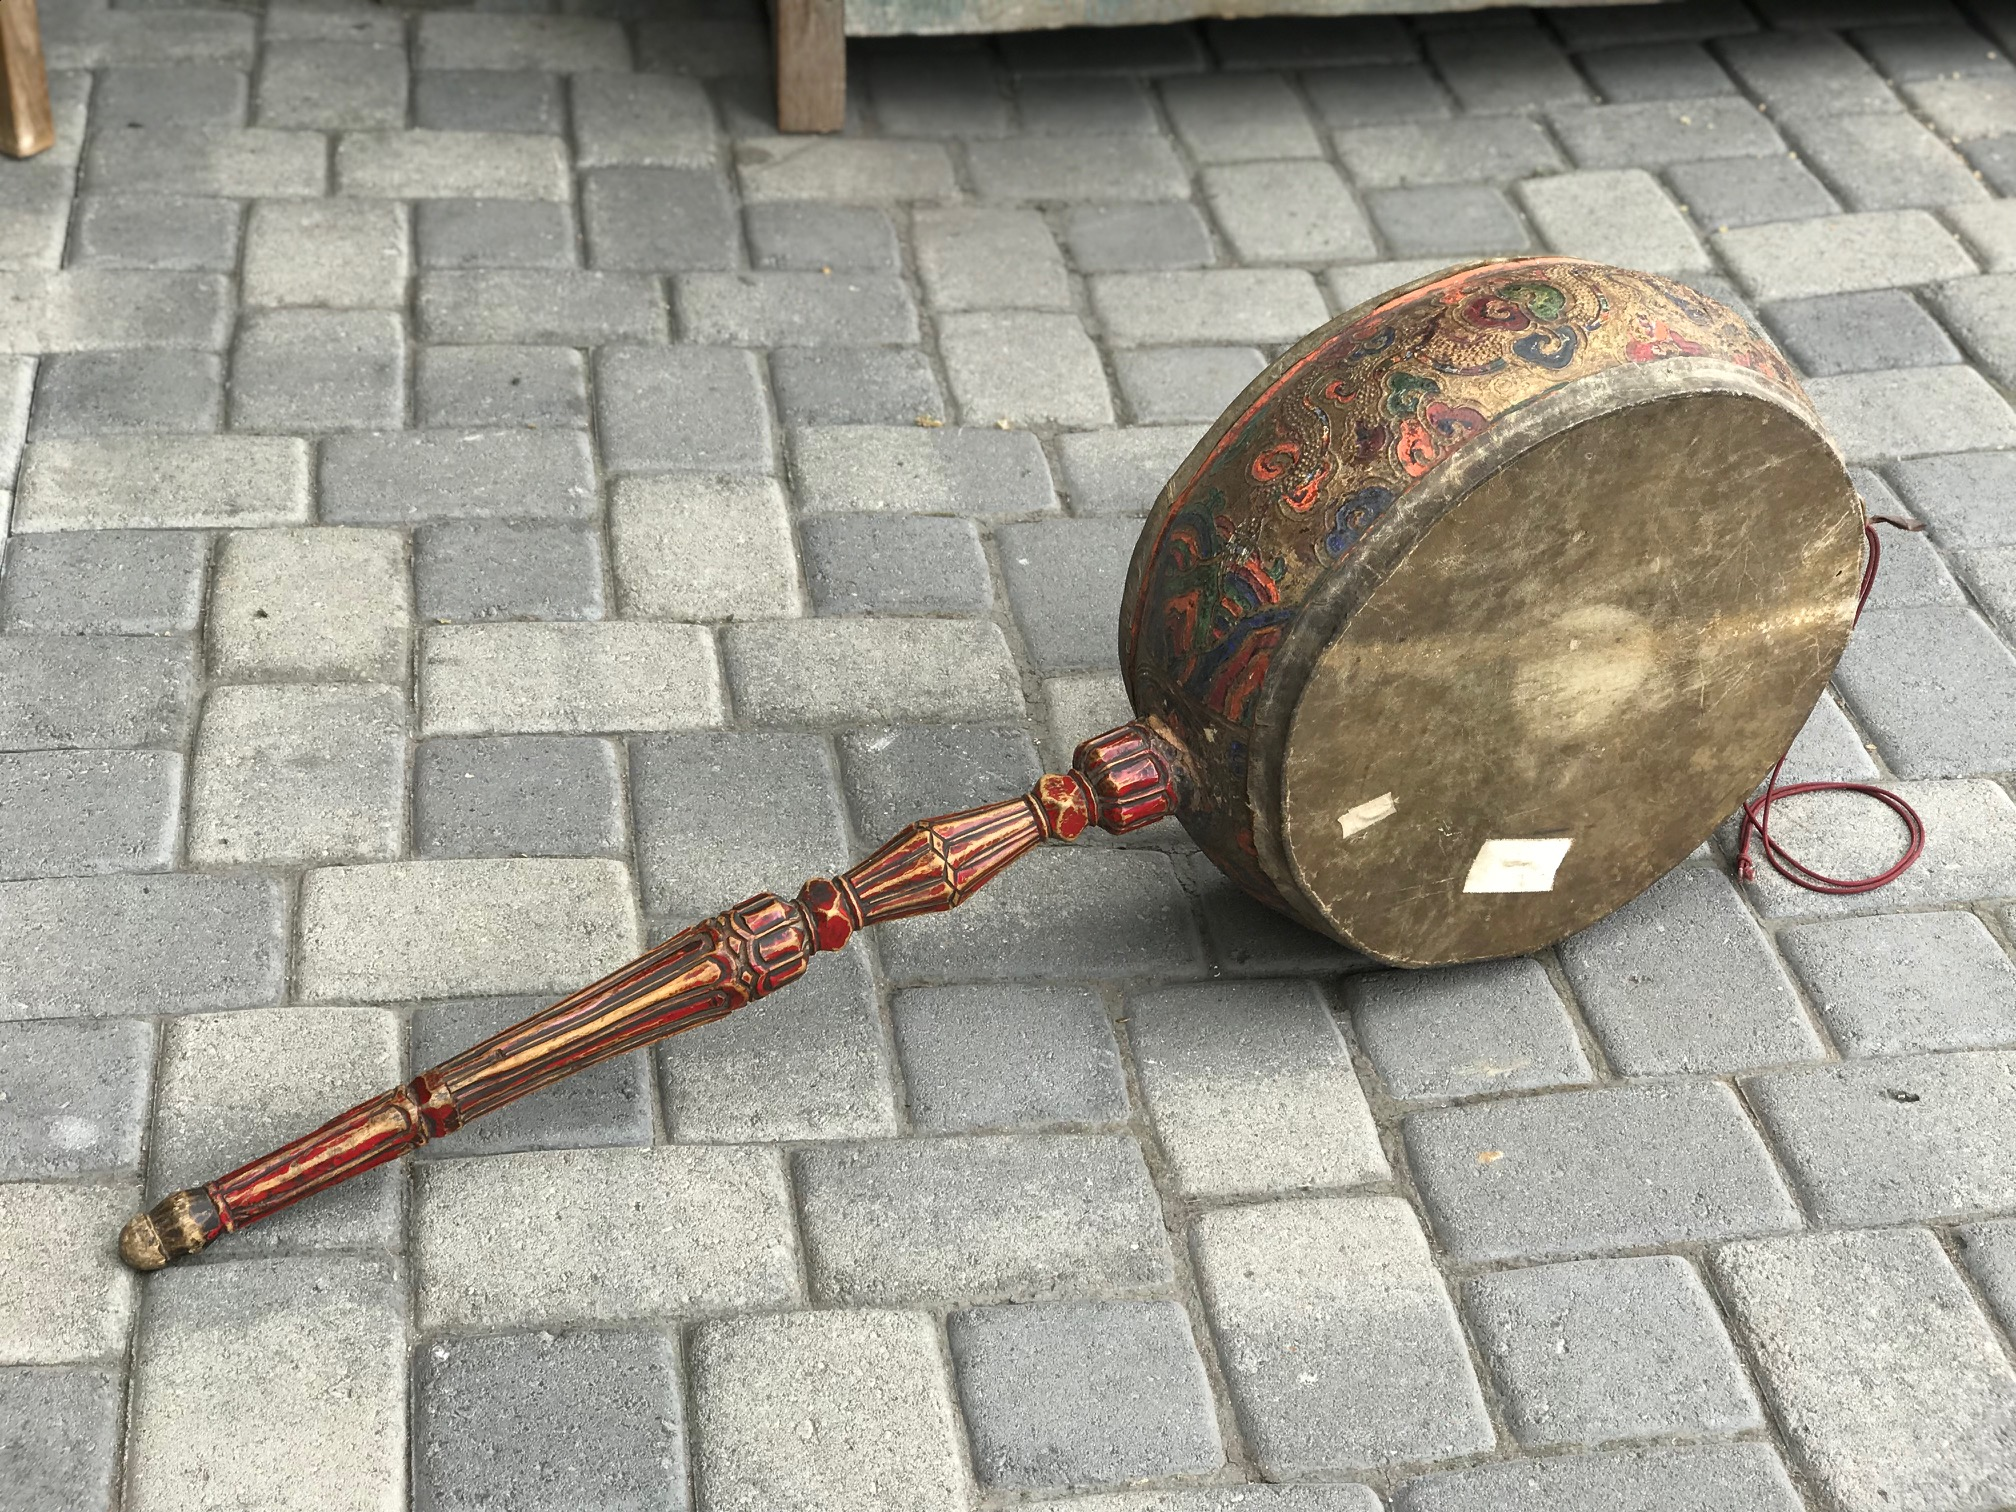 "Temple Drum, Tibet, 100+ years old, Wood, carved and painted polychrome by hand Iron, string, fabric and papier-mâché, decprated with Tibetan symbols. It is played with a curved stick and used for religious ceremonies and for meditation. 44 1/2"" x 16 1/2"" x 3 1/4"", $1100. thedavidalancollection.com , solana beach, ca"